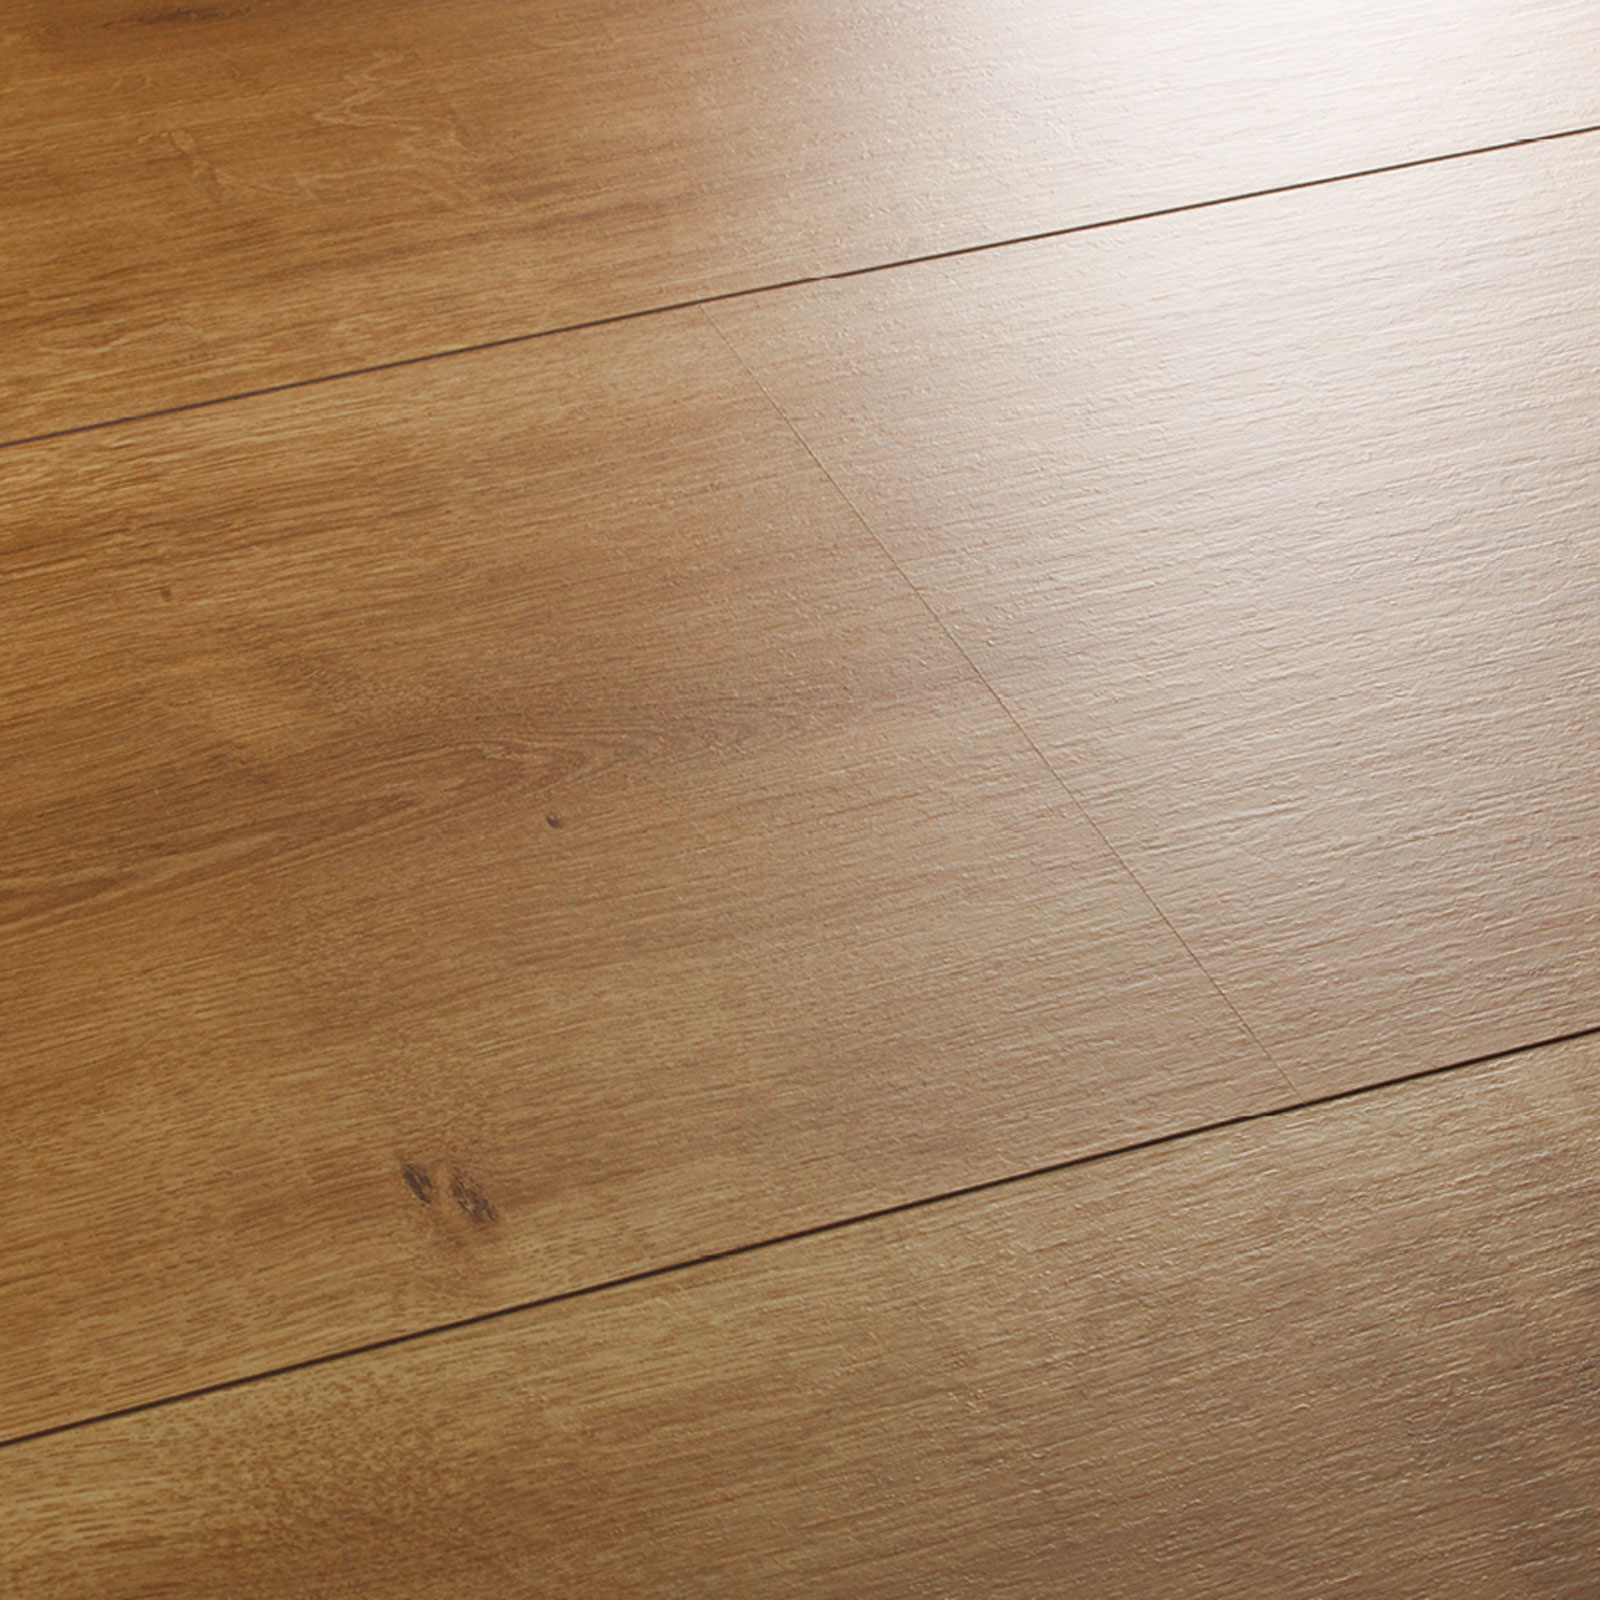 Wembury spring oak laminate flooring swatch